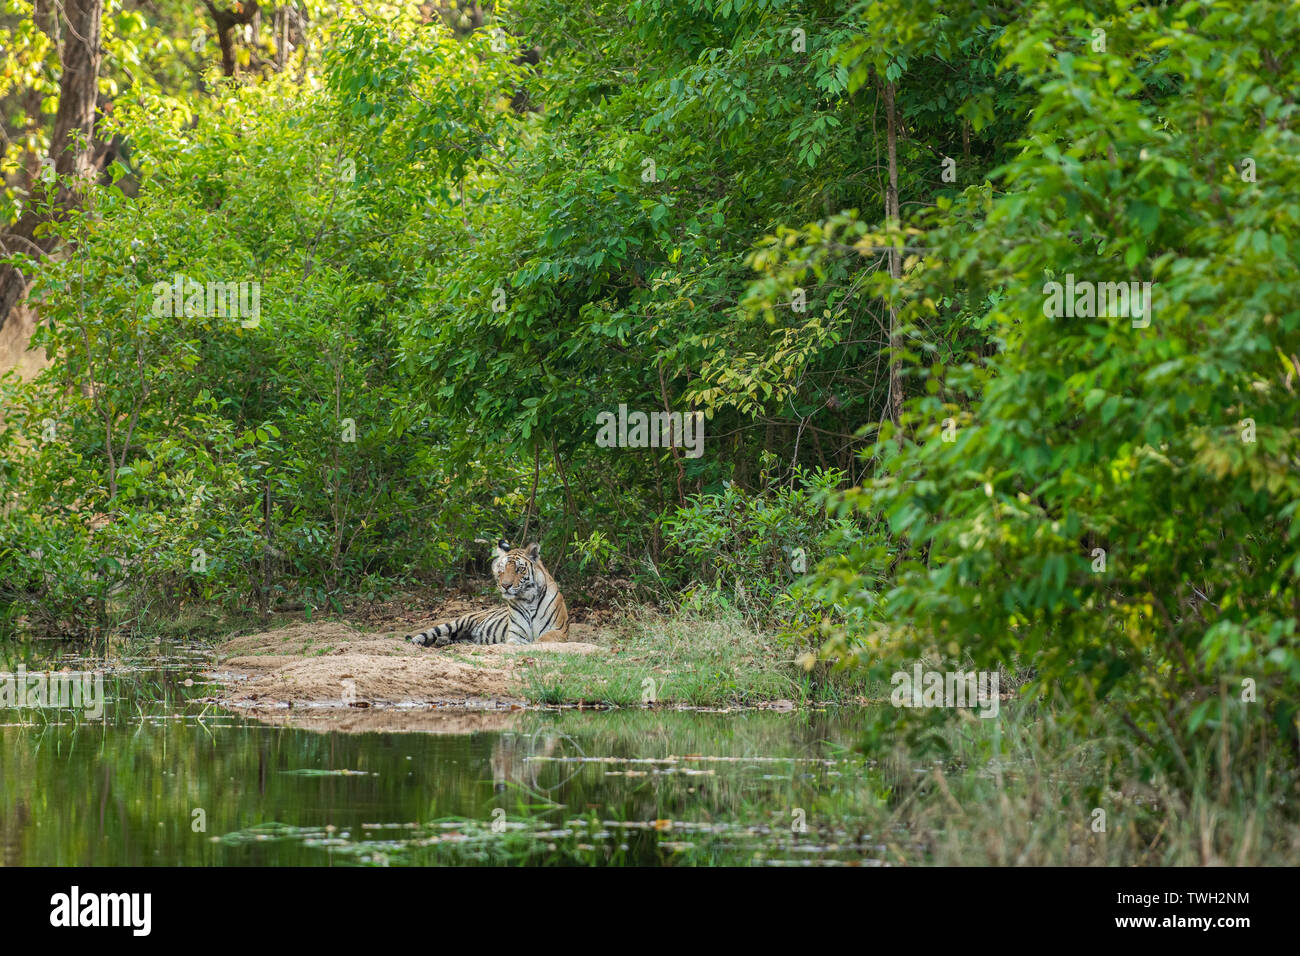 Royal bengal male tiger resting near water body of the jungle. Animal in green forest near water stream. Wild cat in nature habitat at bandhavgarh - Stock Image